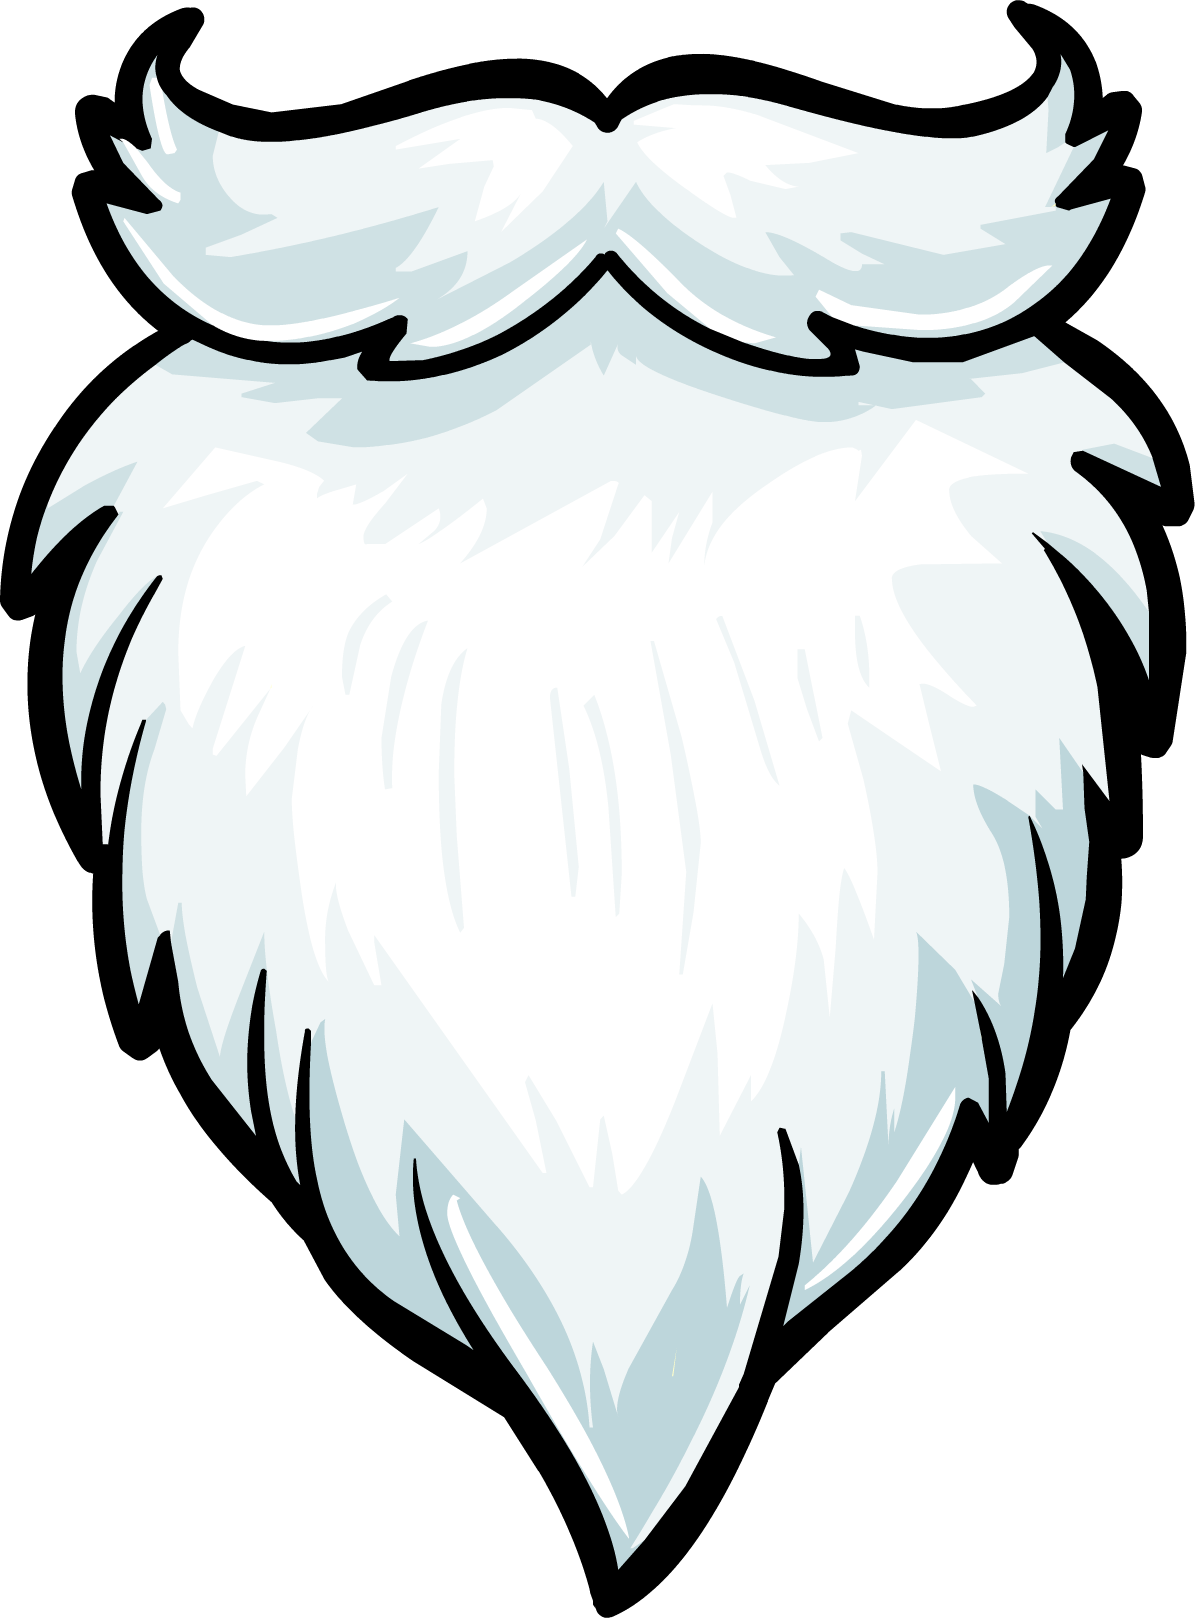 Santa Beard Coloring Page 7 best images of printable santa claus beard ...